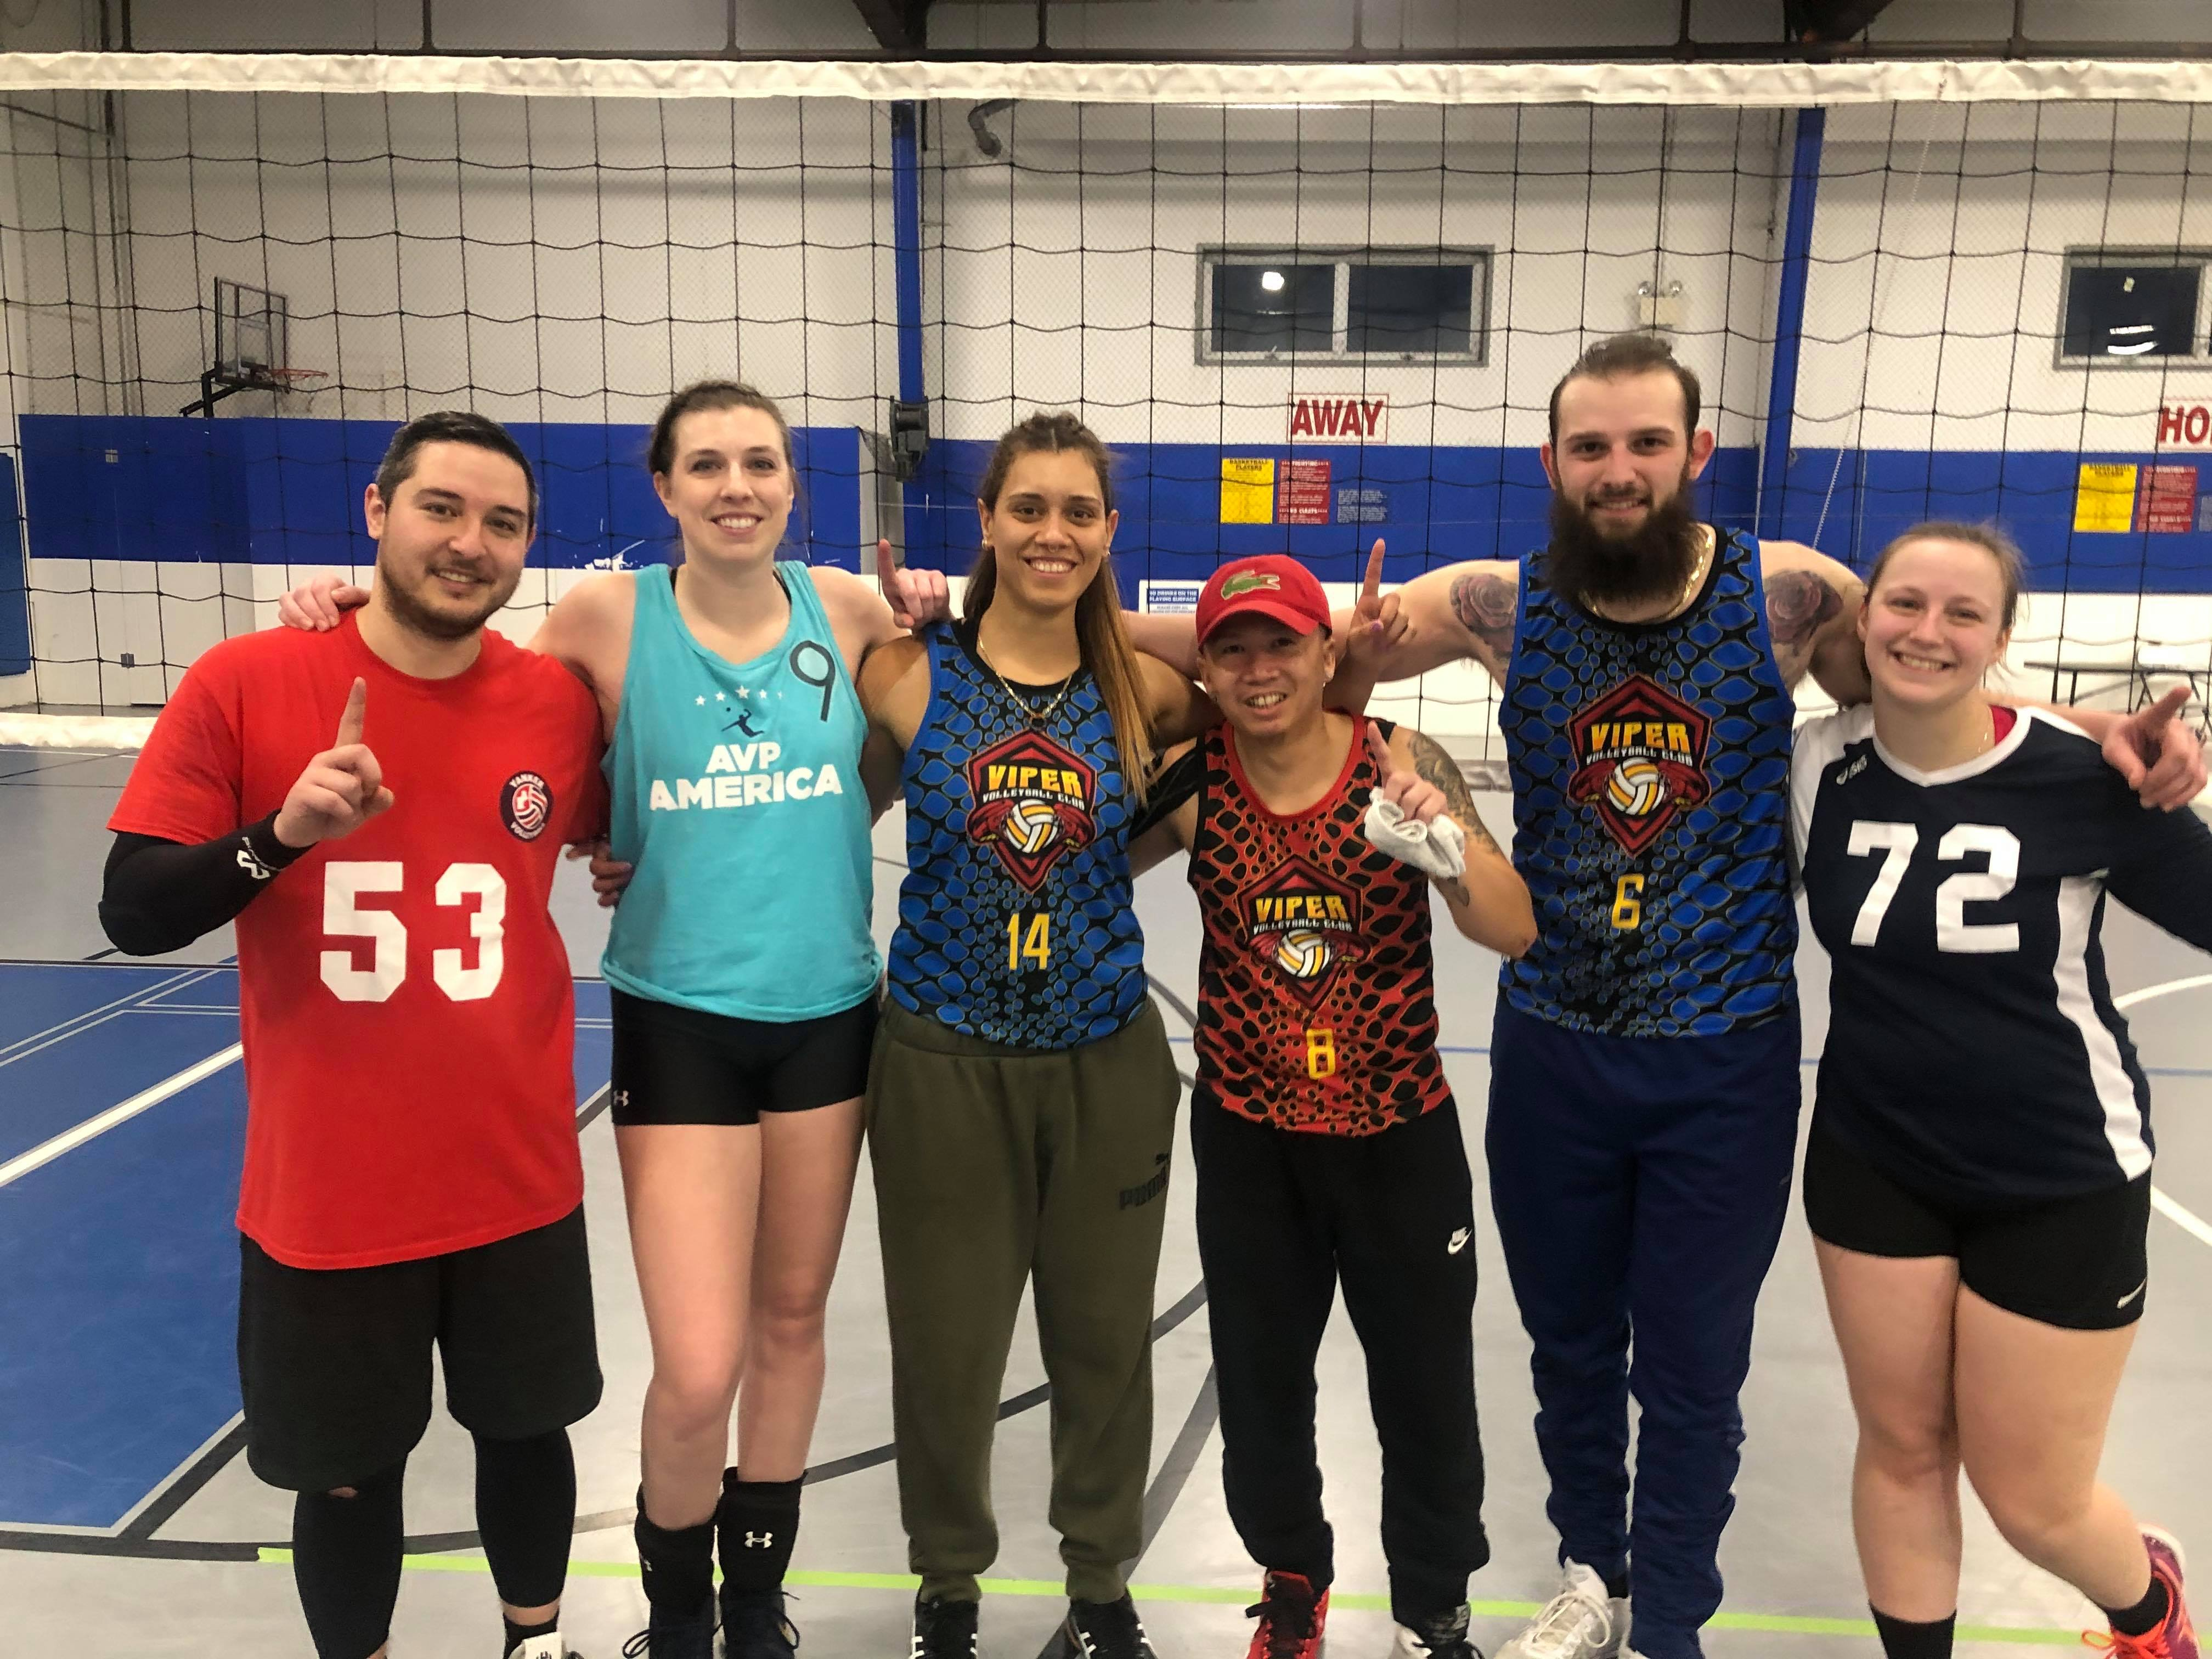 1/25/2020 RCO C Champions: Price is Right